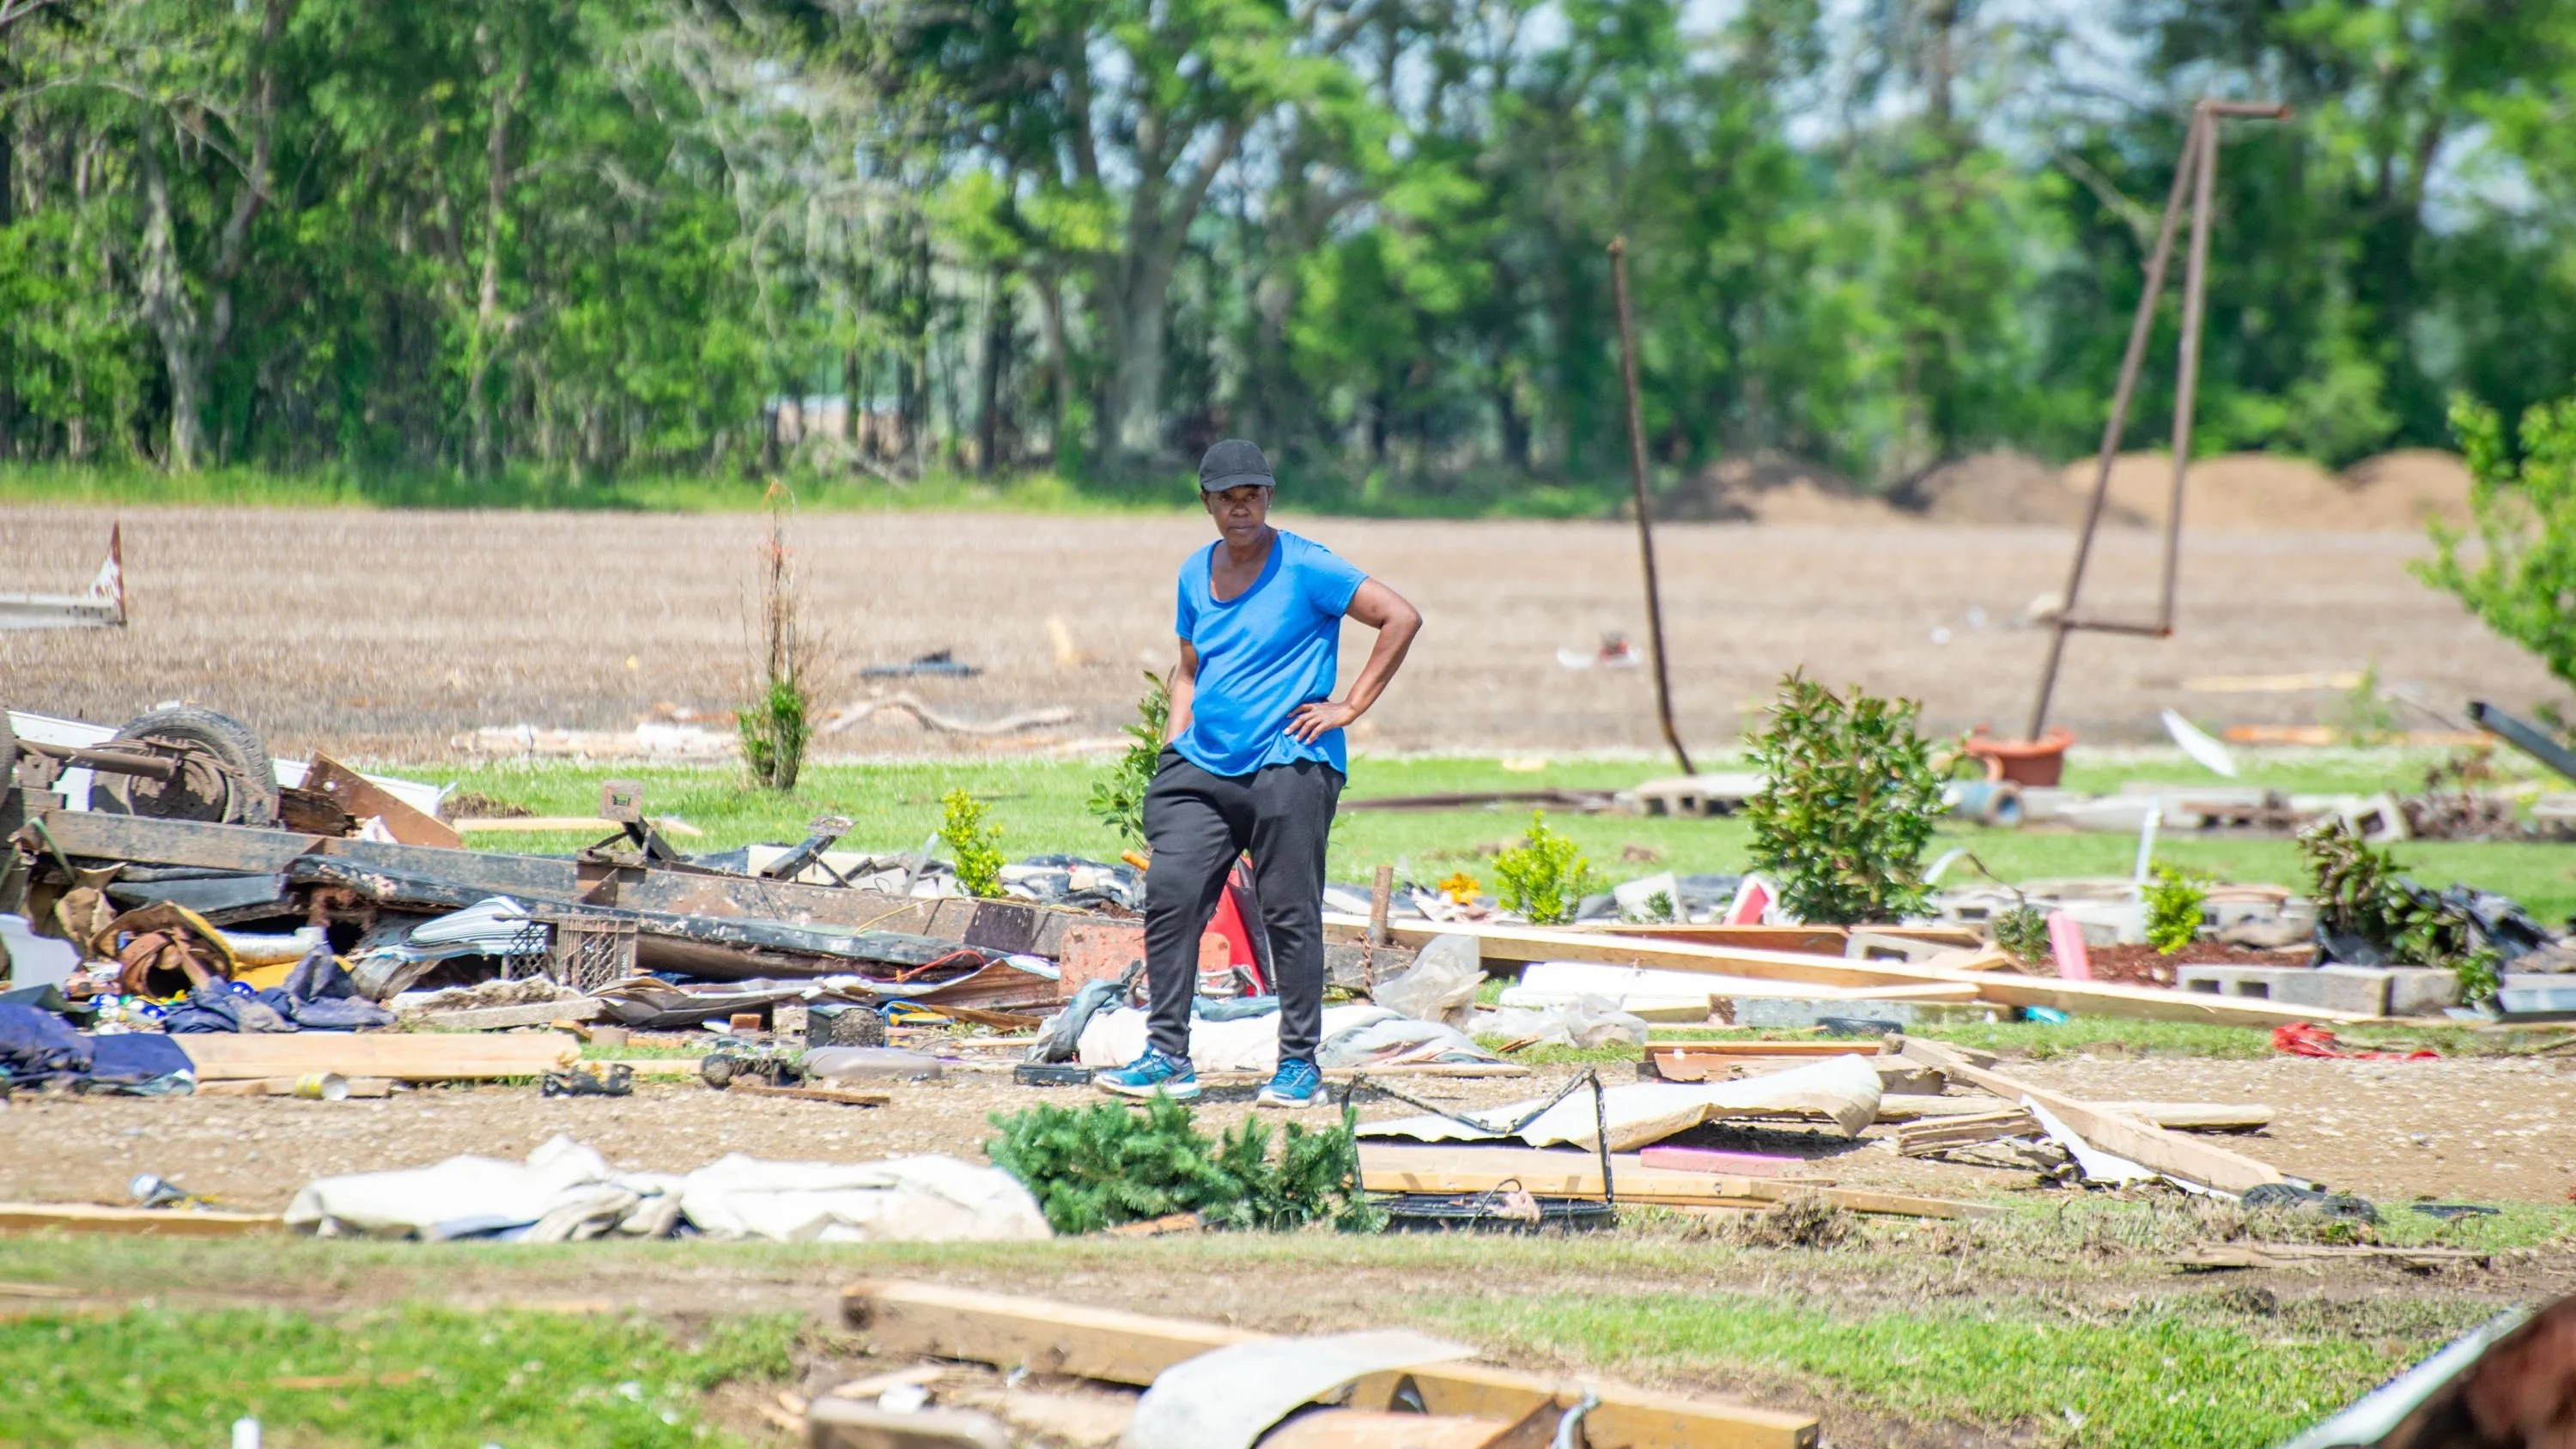 Gladus Johnson studies the damage caused by a deadly tornado in the parish of St. Landry.